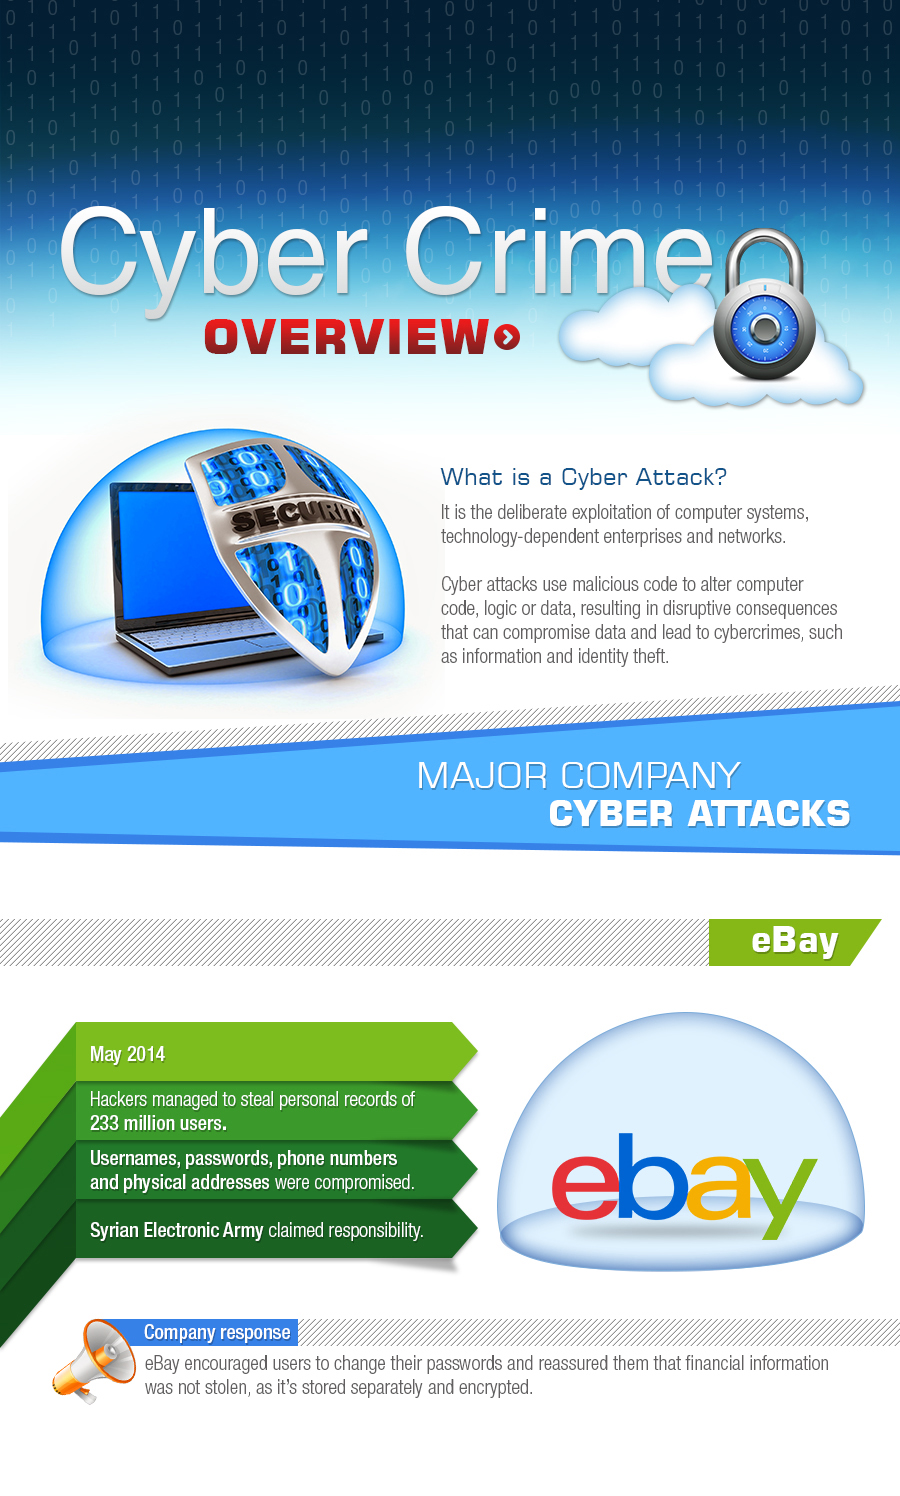 cybercrime1 - Cyber Crime Infographic